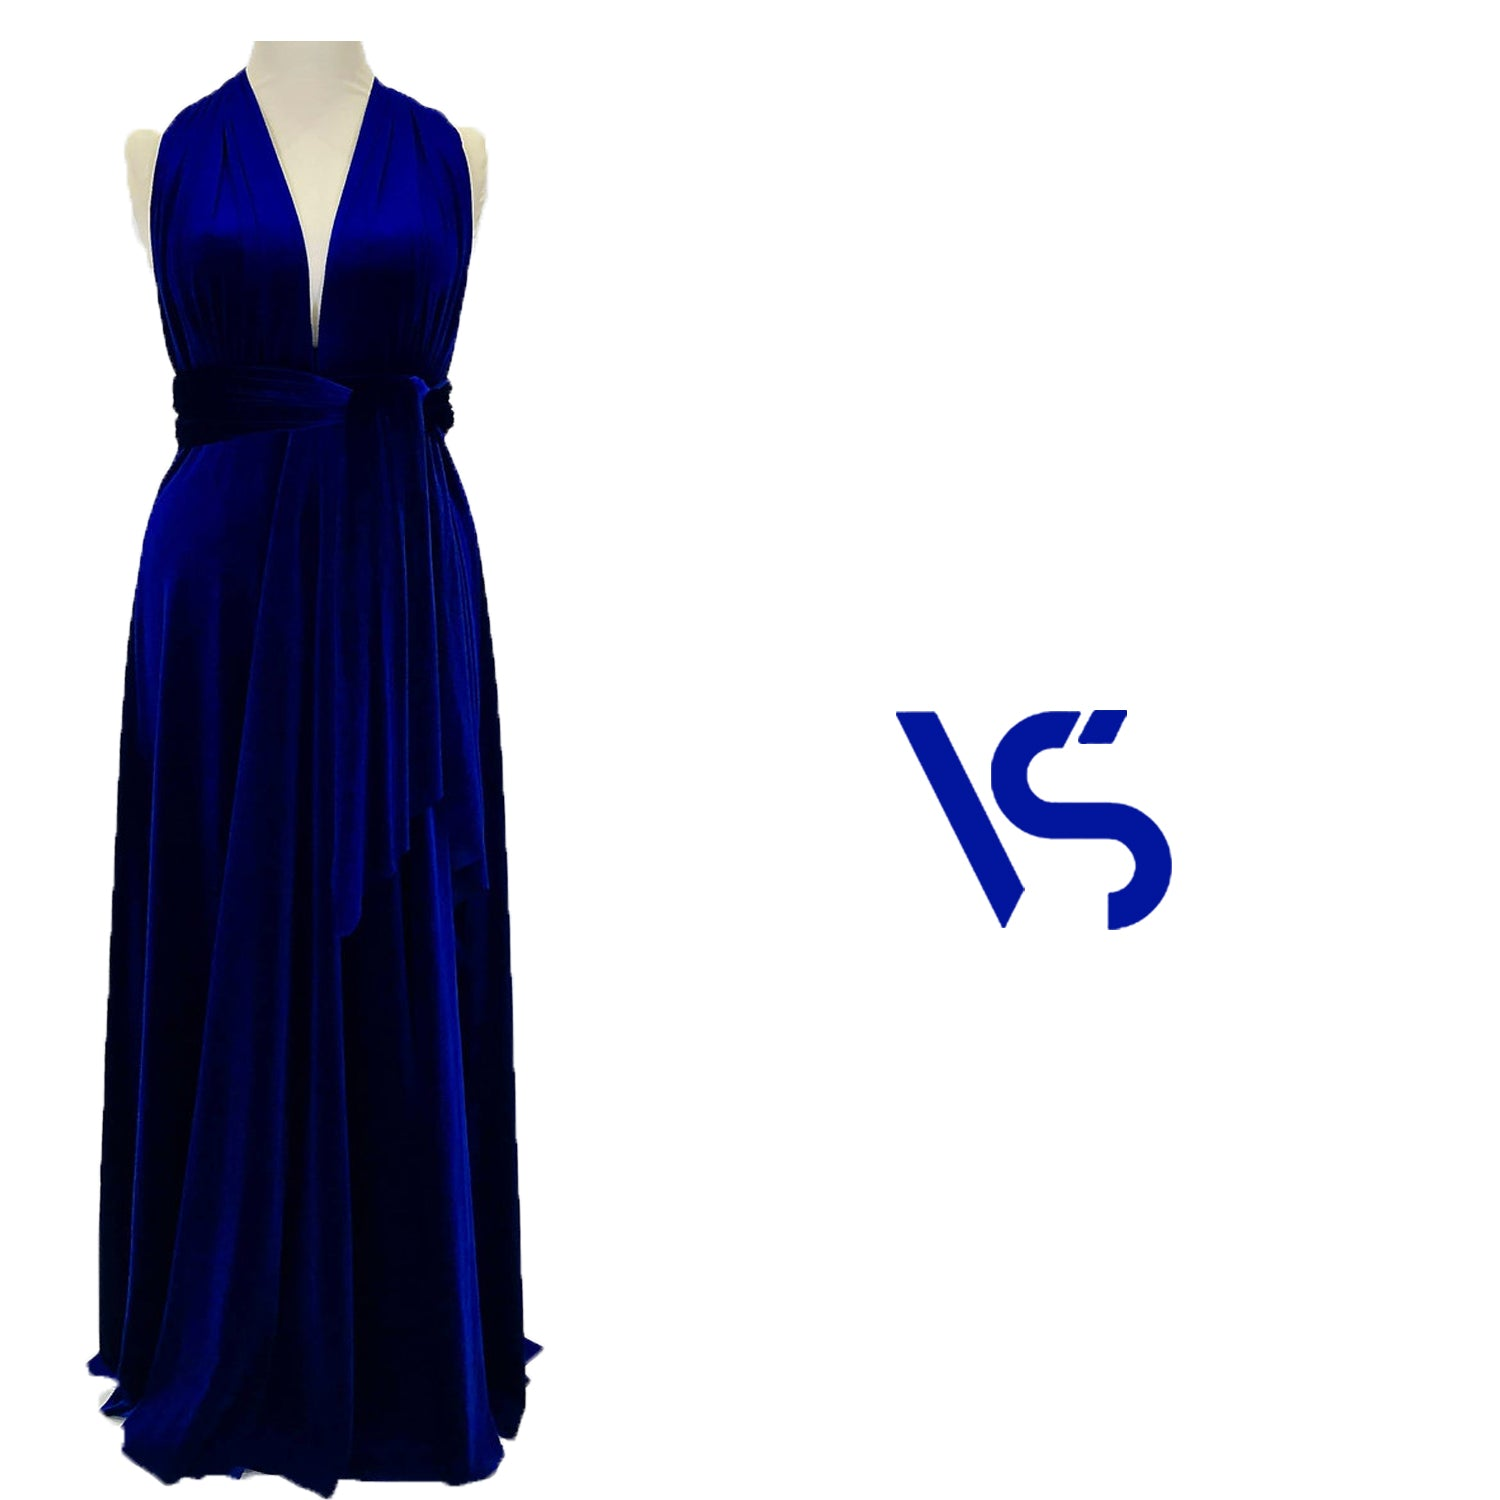 Royal blue velvet dress, multiway dress, infinity dress, bridesmaid dress, prom dress, evening dress, convertible dress, party dress